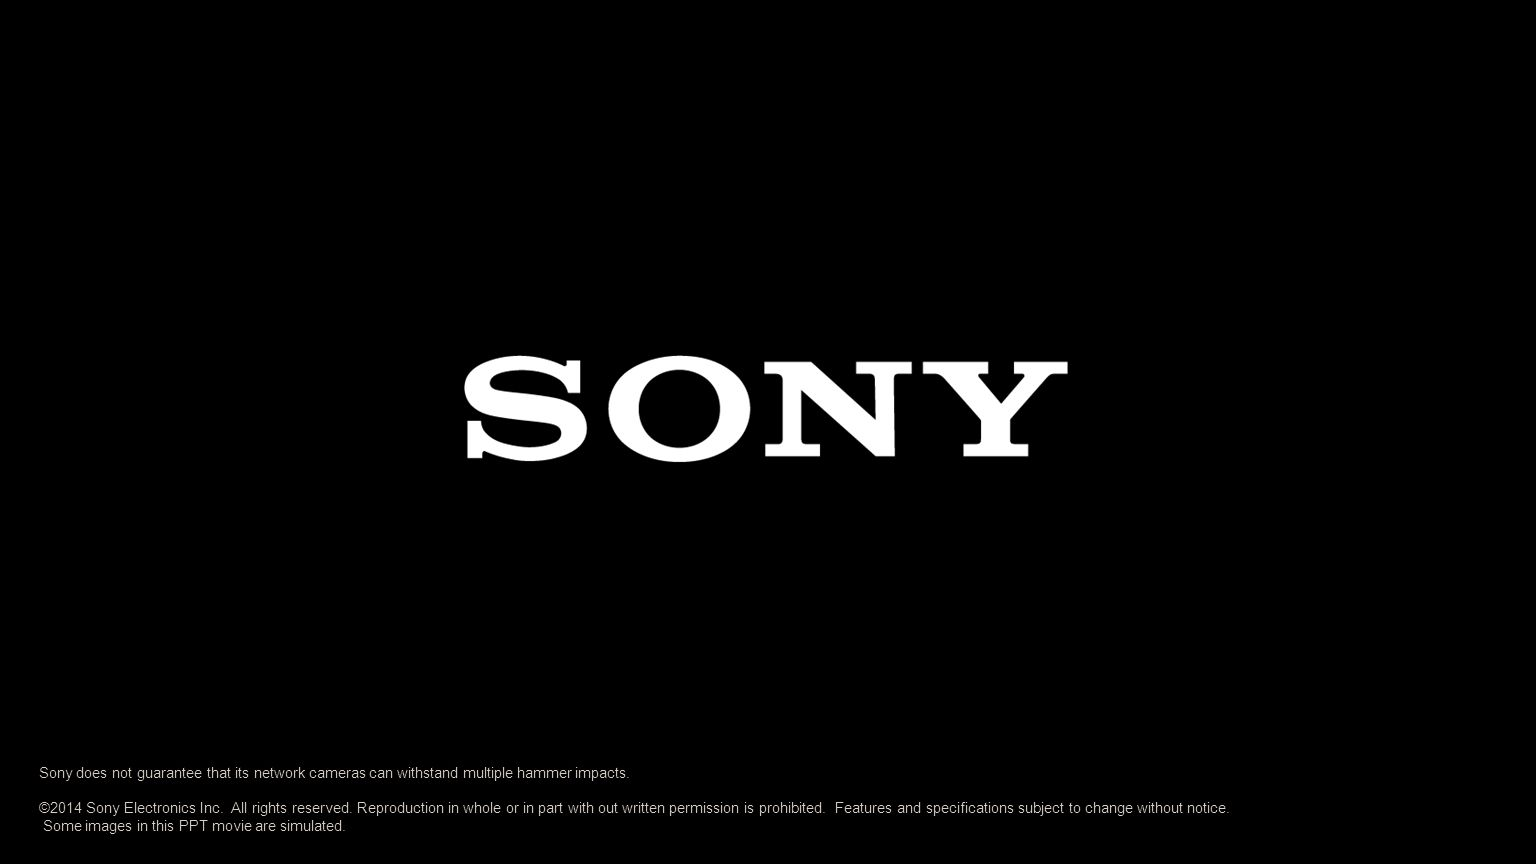 ©2014 Sony Electronics Inc. All rights reserved.